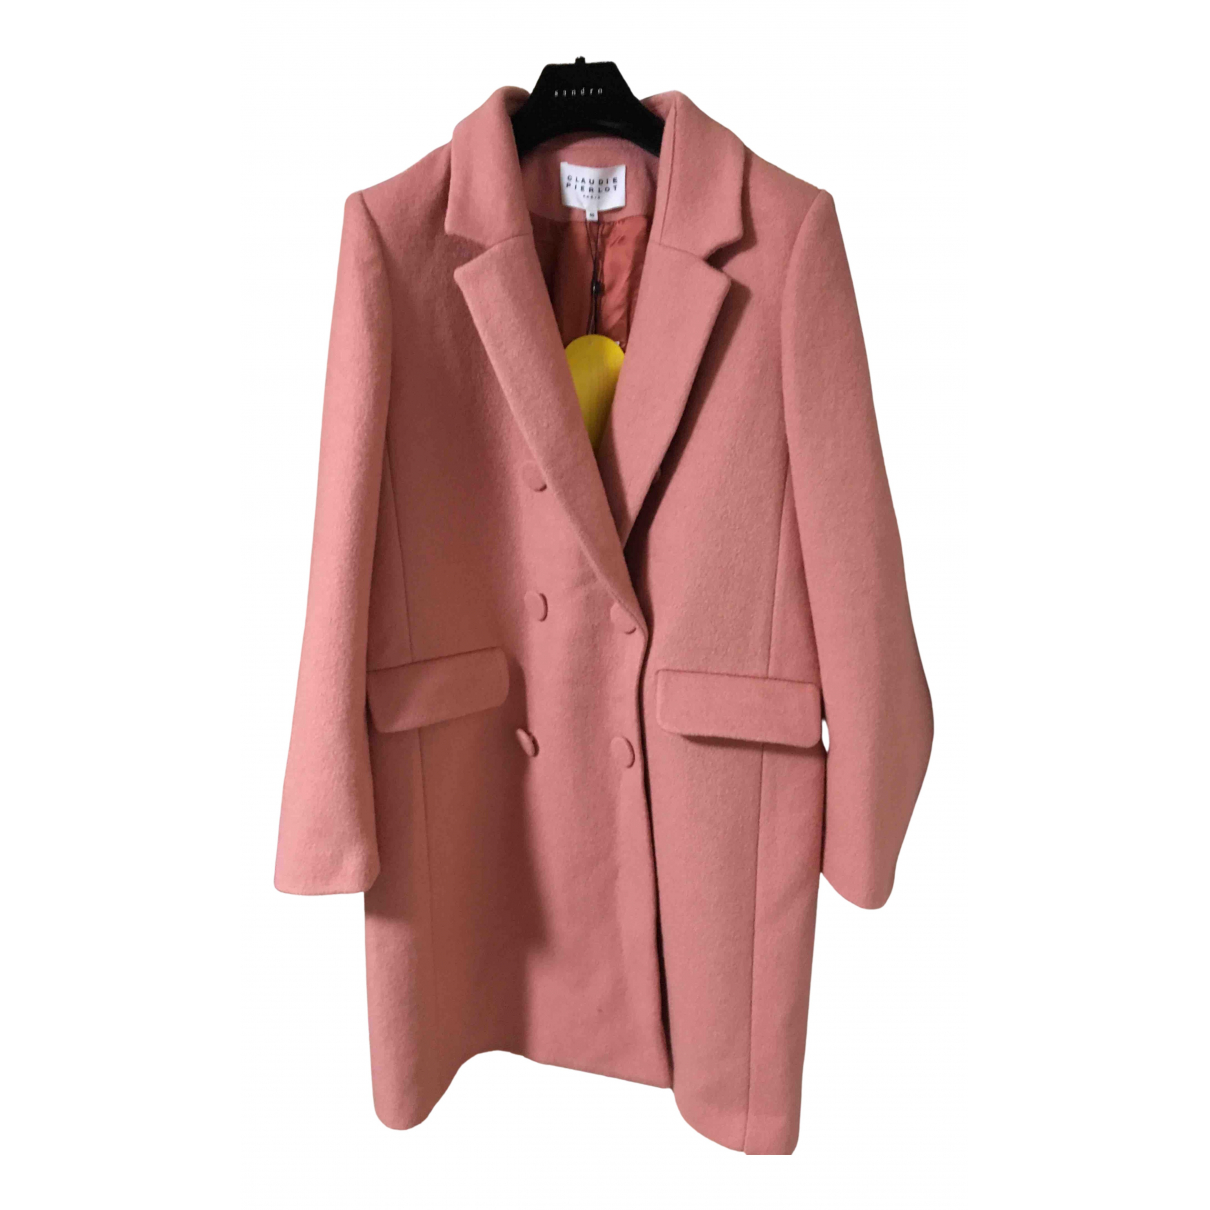 Claudie Pierlot - Manteau Fall Winter 2019 pour femme - rose